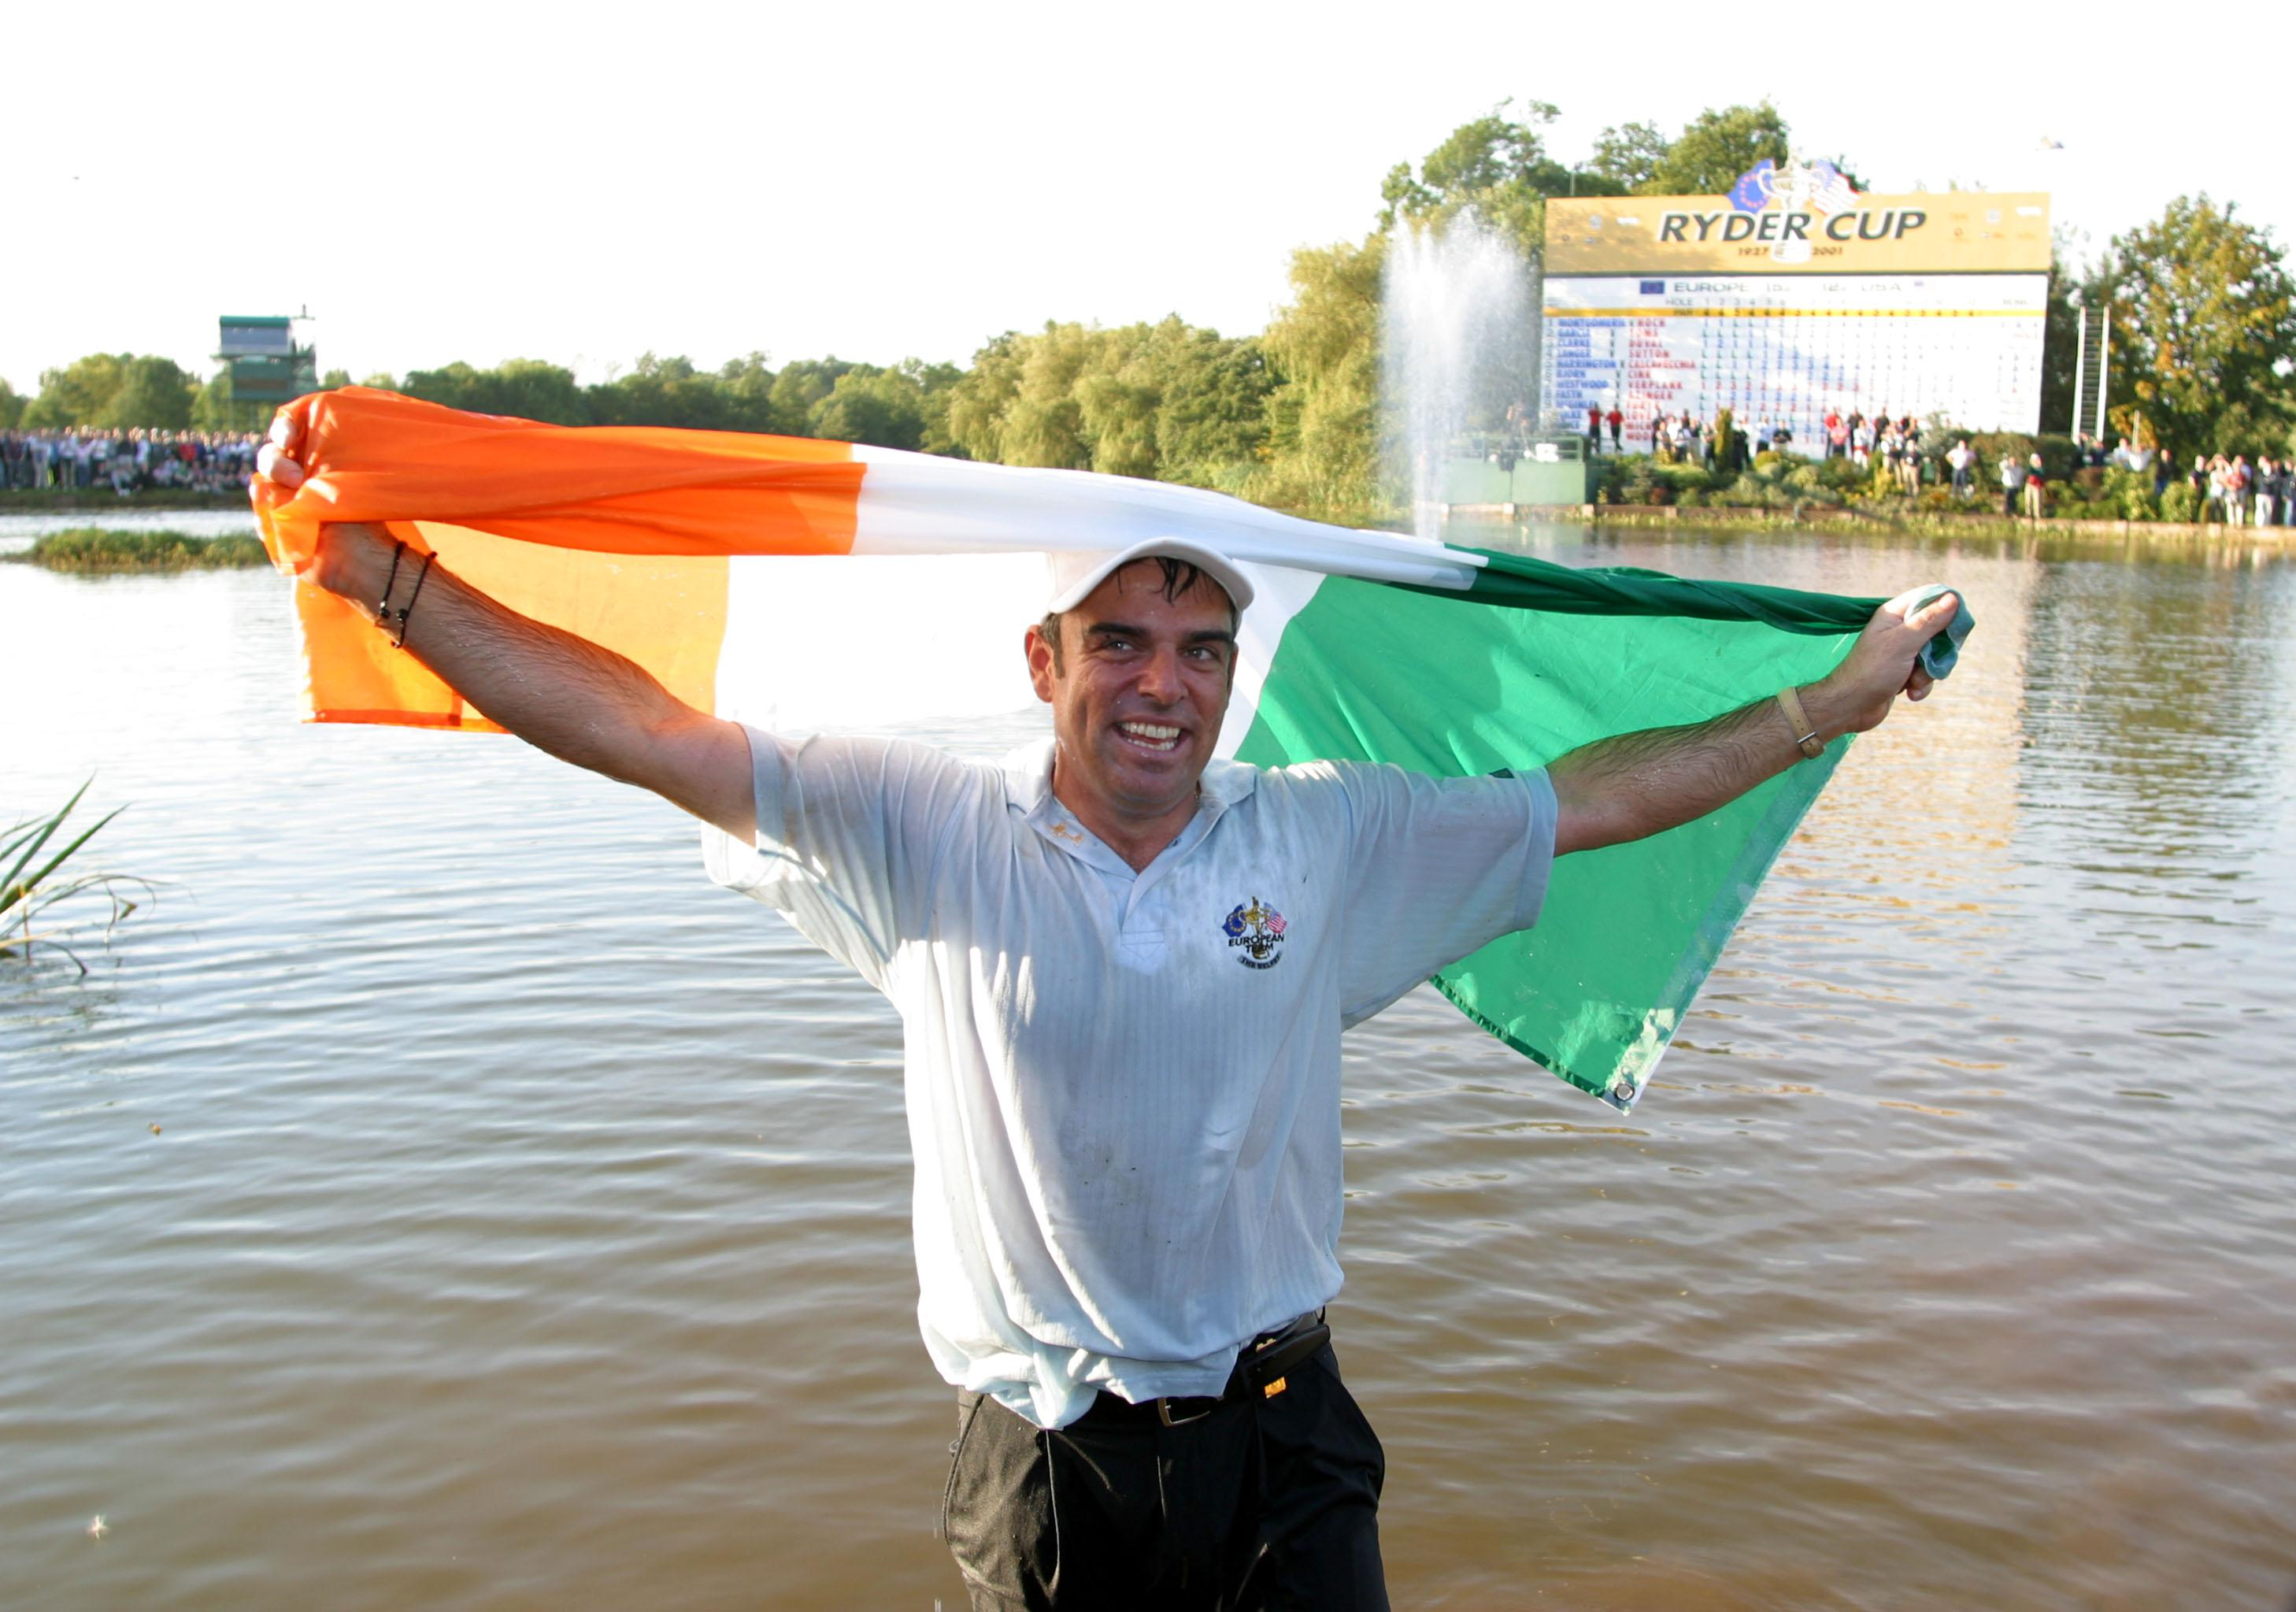 Ryder Cup Captain McGinley tells juniors to have the 'complete package'